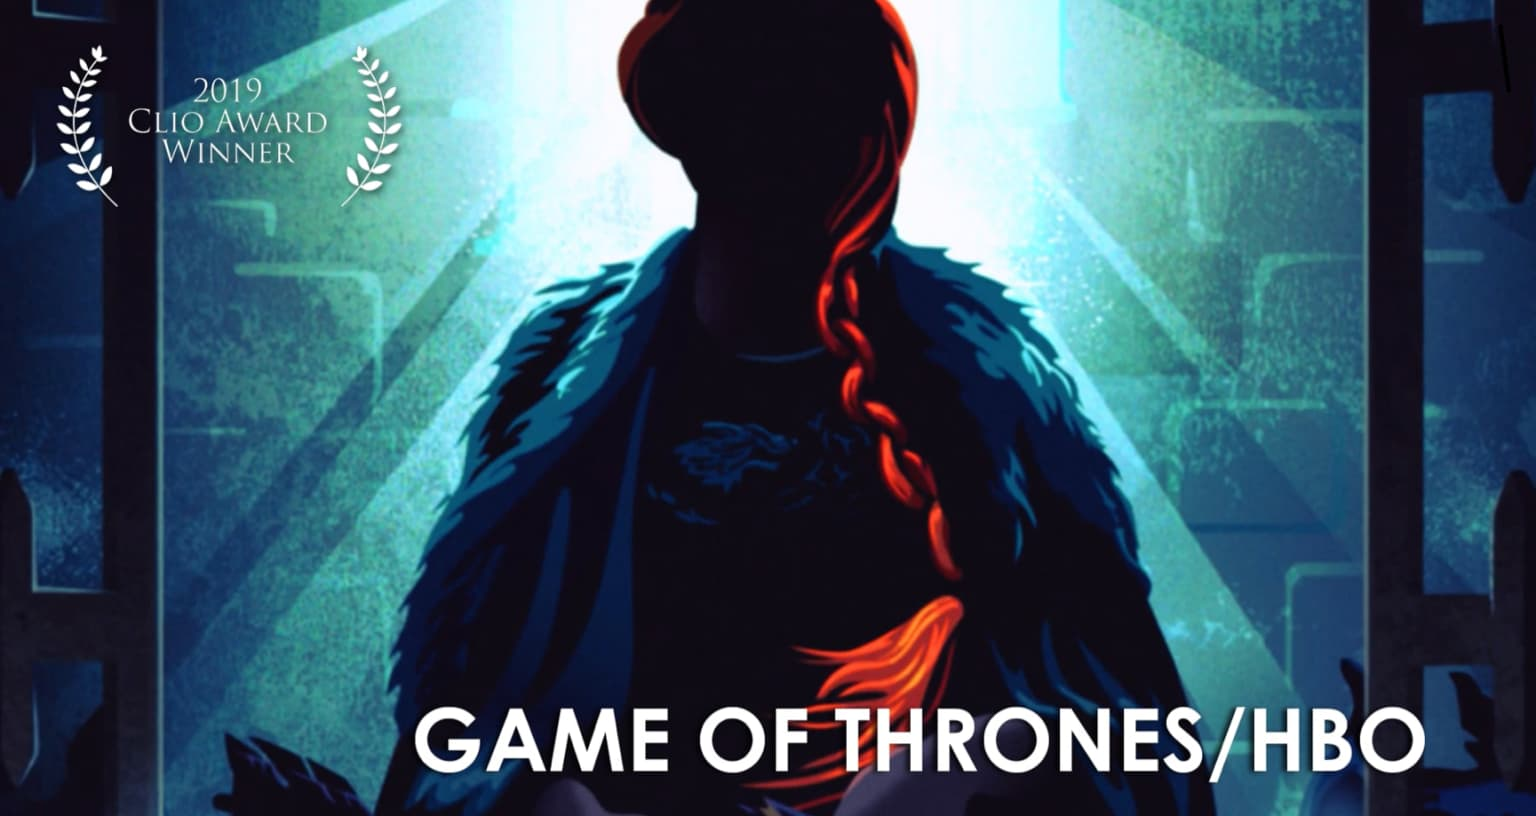 Game of Thrones - A Beautiful Death